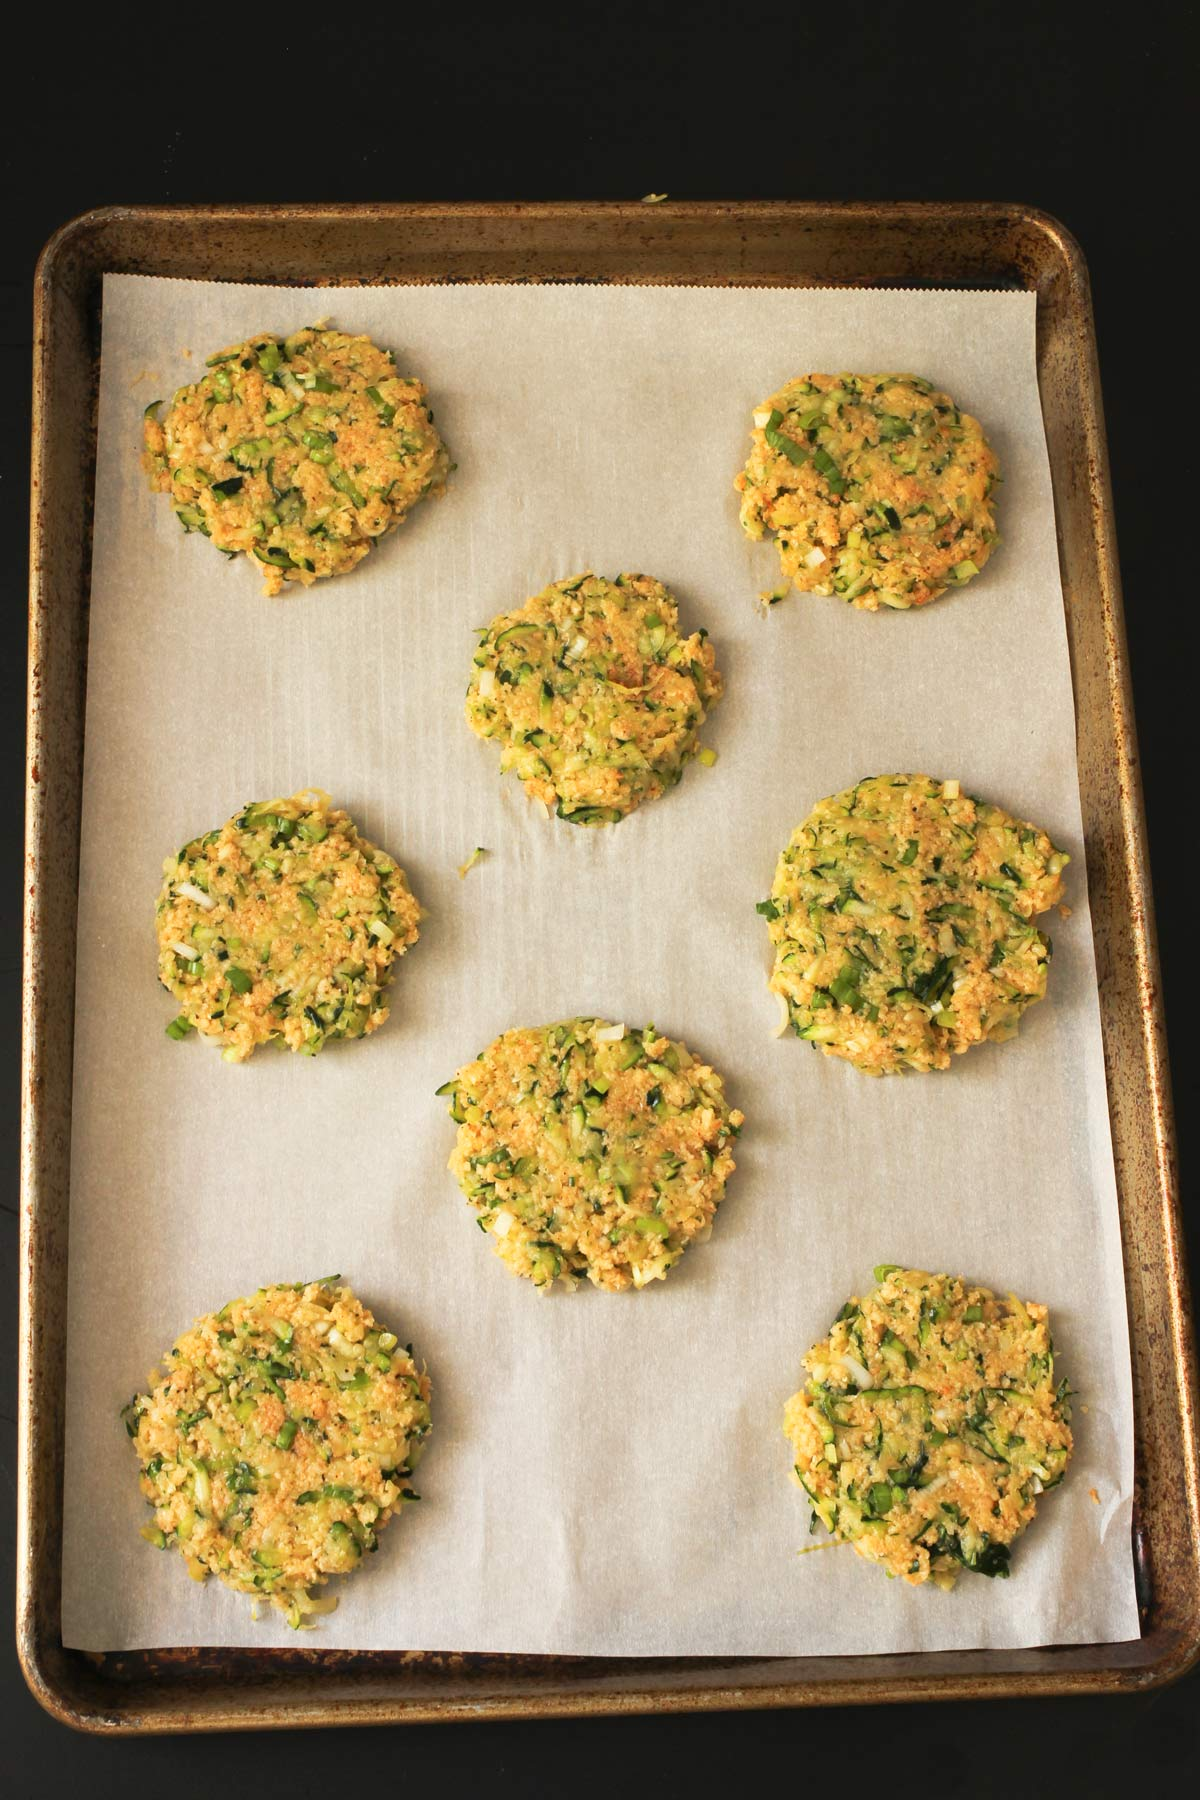 zucchini fritters on lined tray ready for baking.